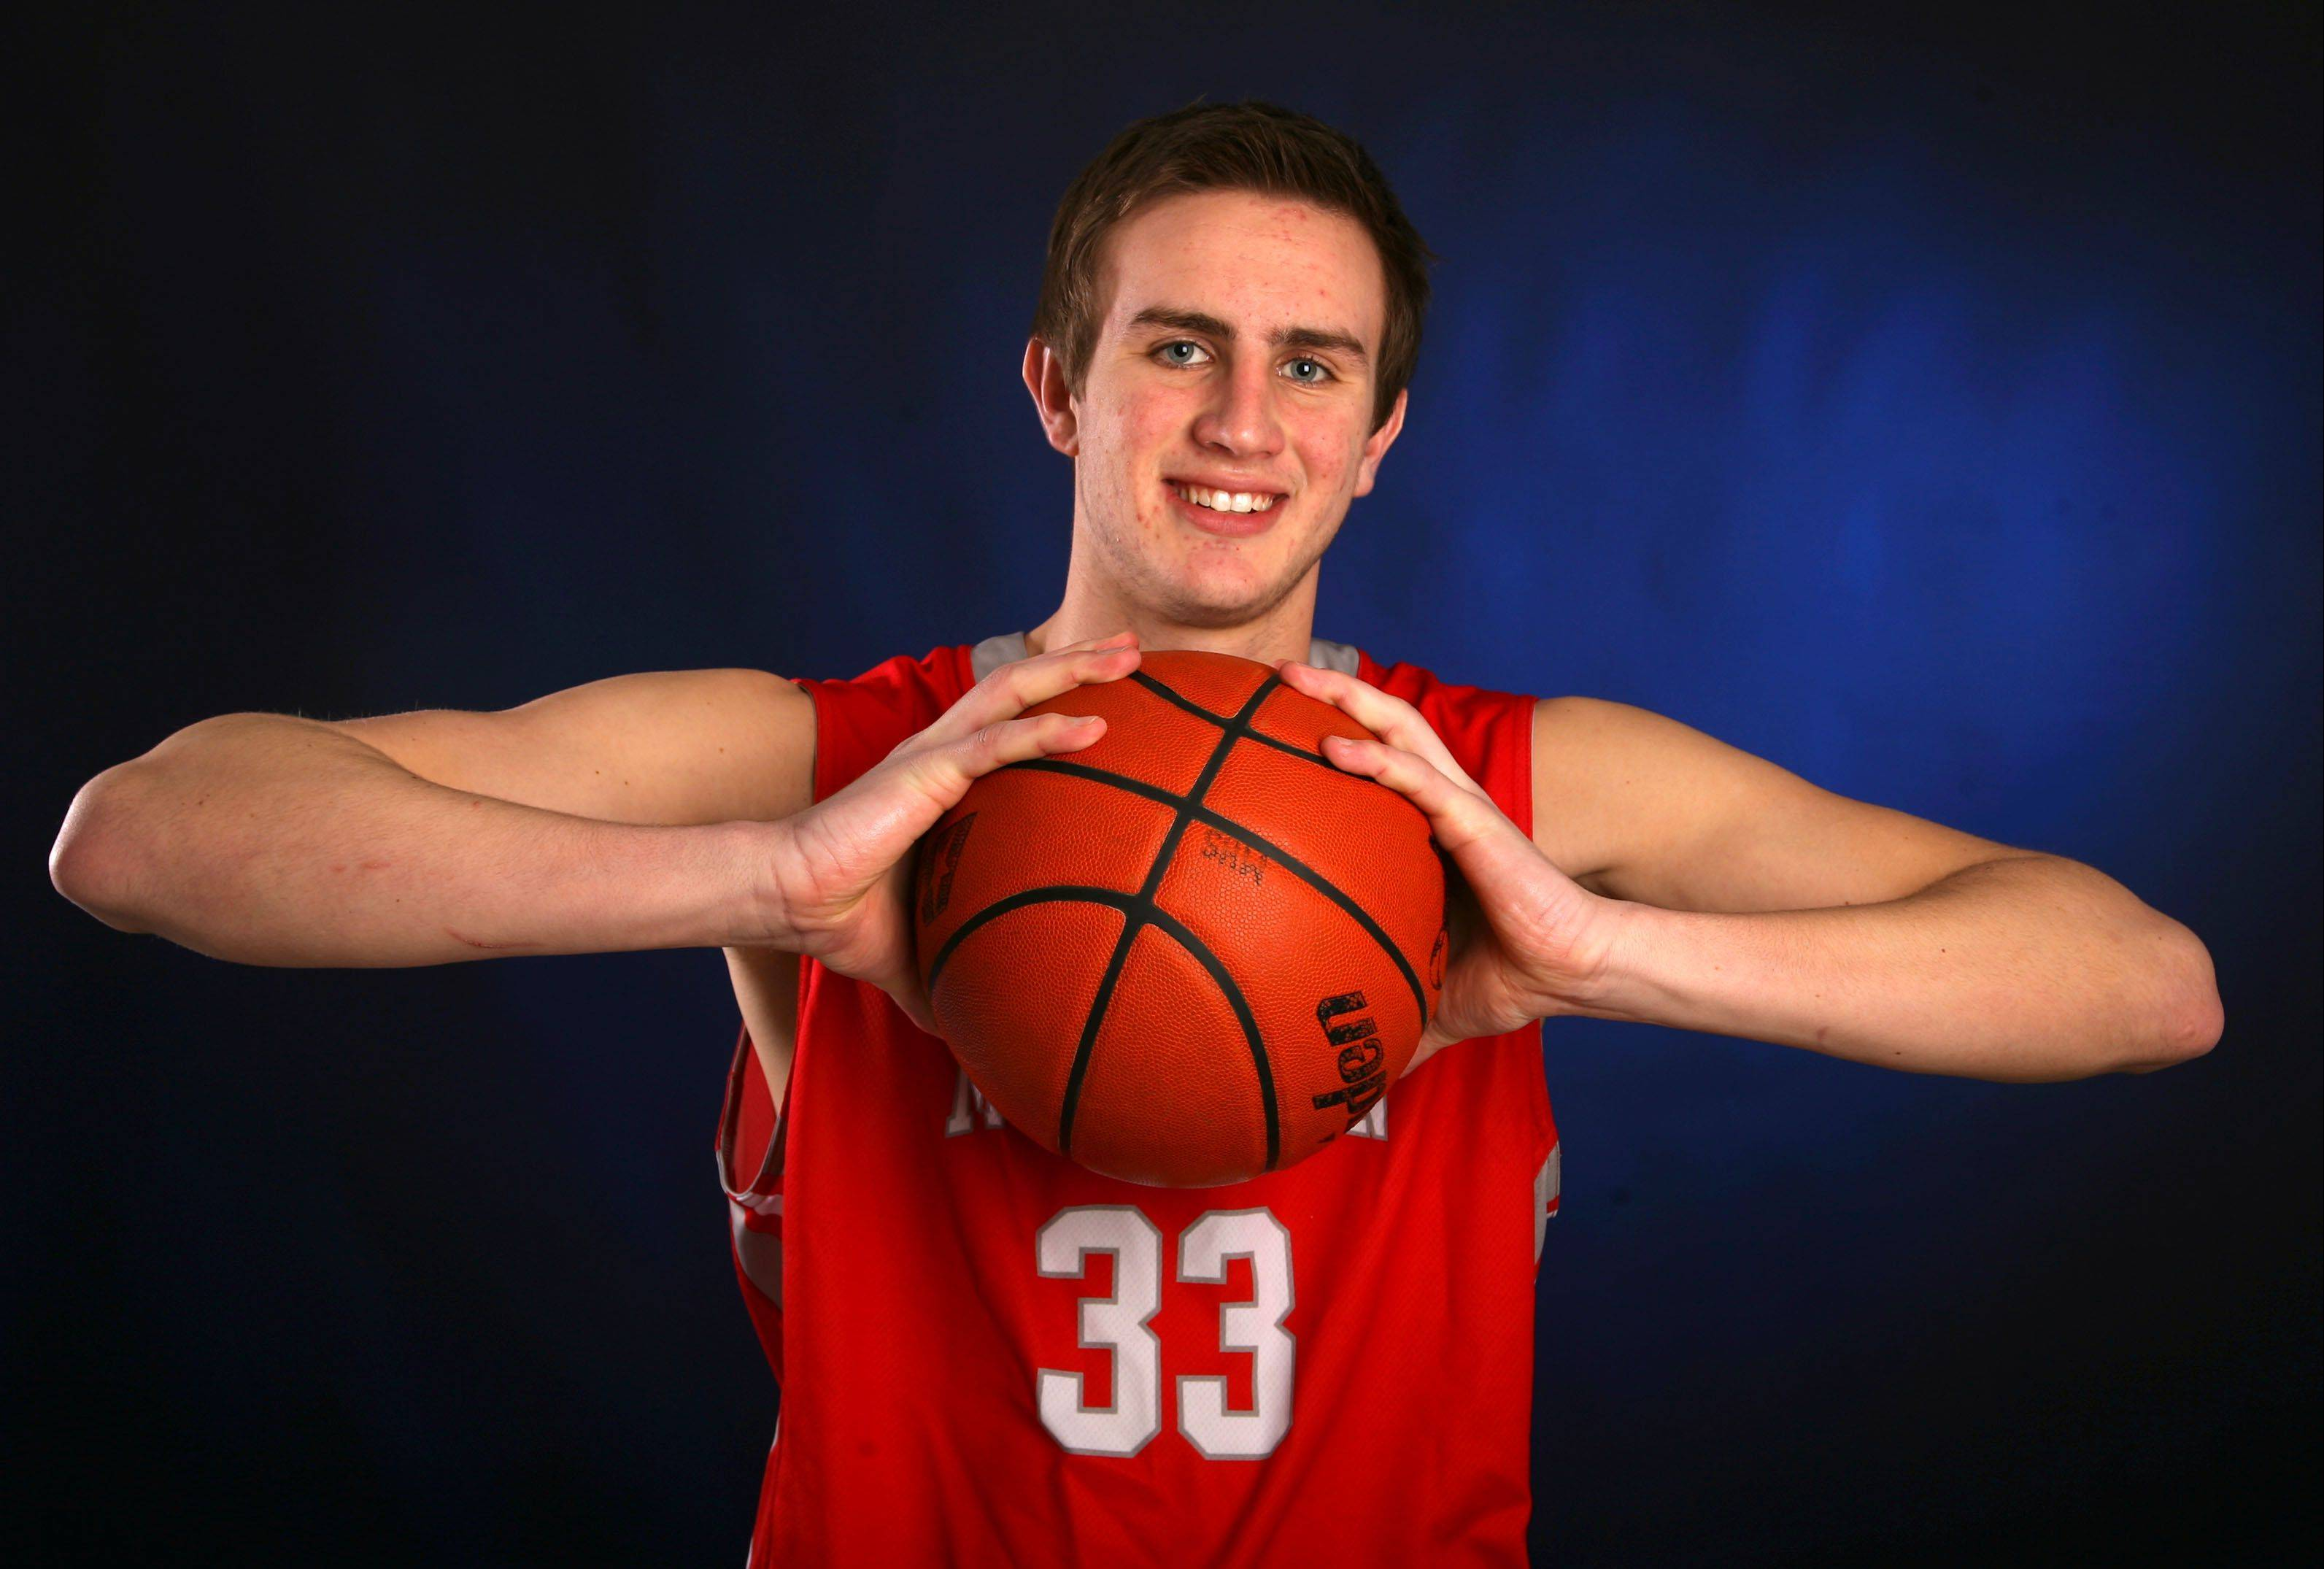 After leading Mundelein to a third straight regional title, Sean O'Brien has a bright basketball future awaiting him at Southern Illinois.